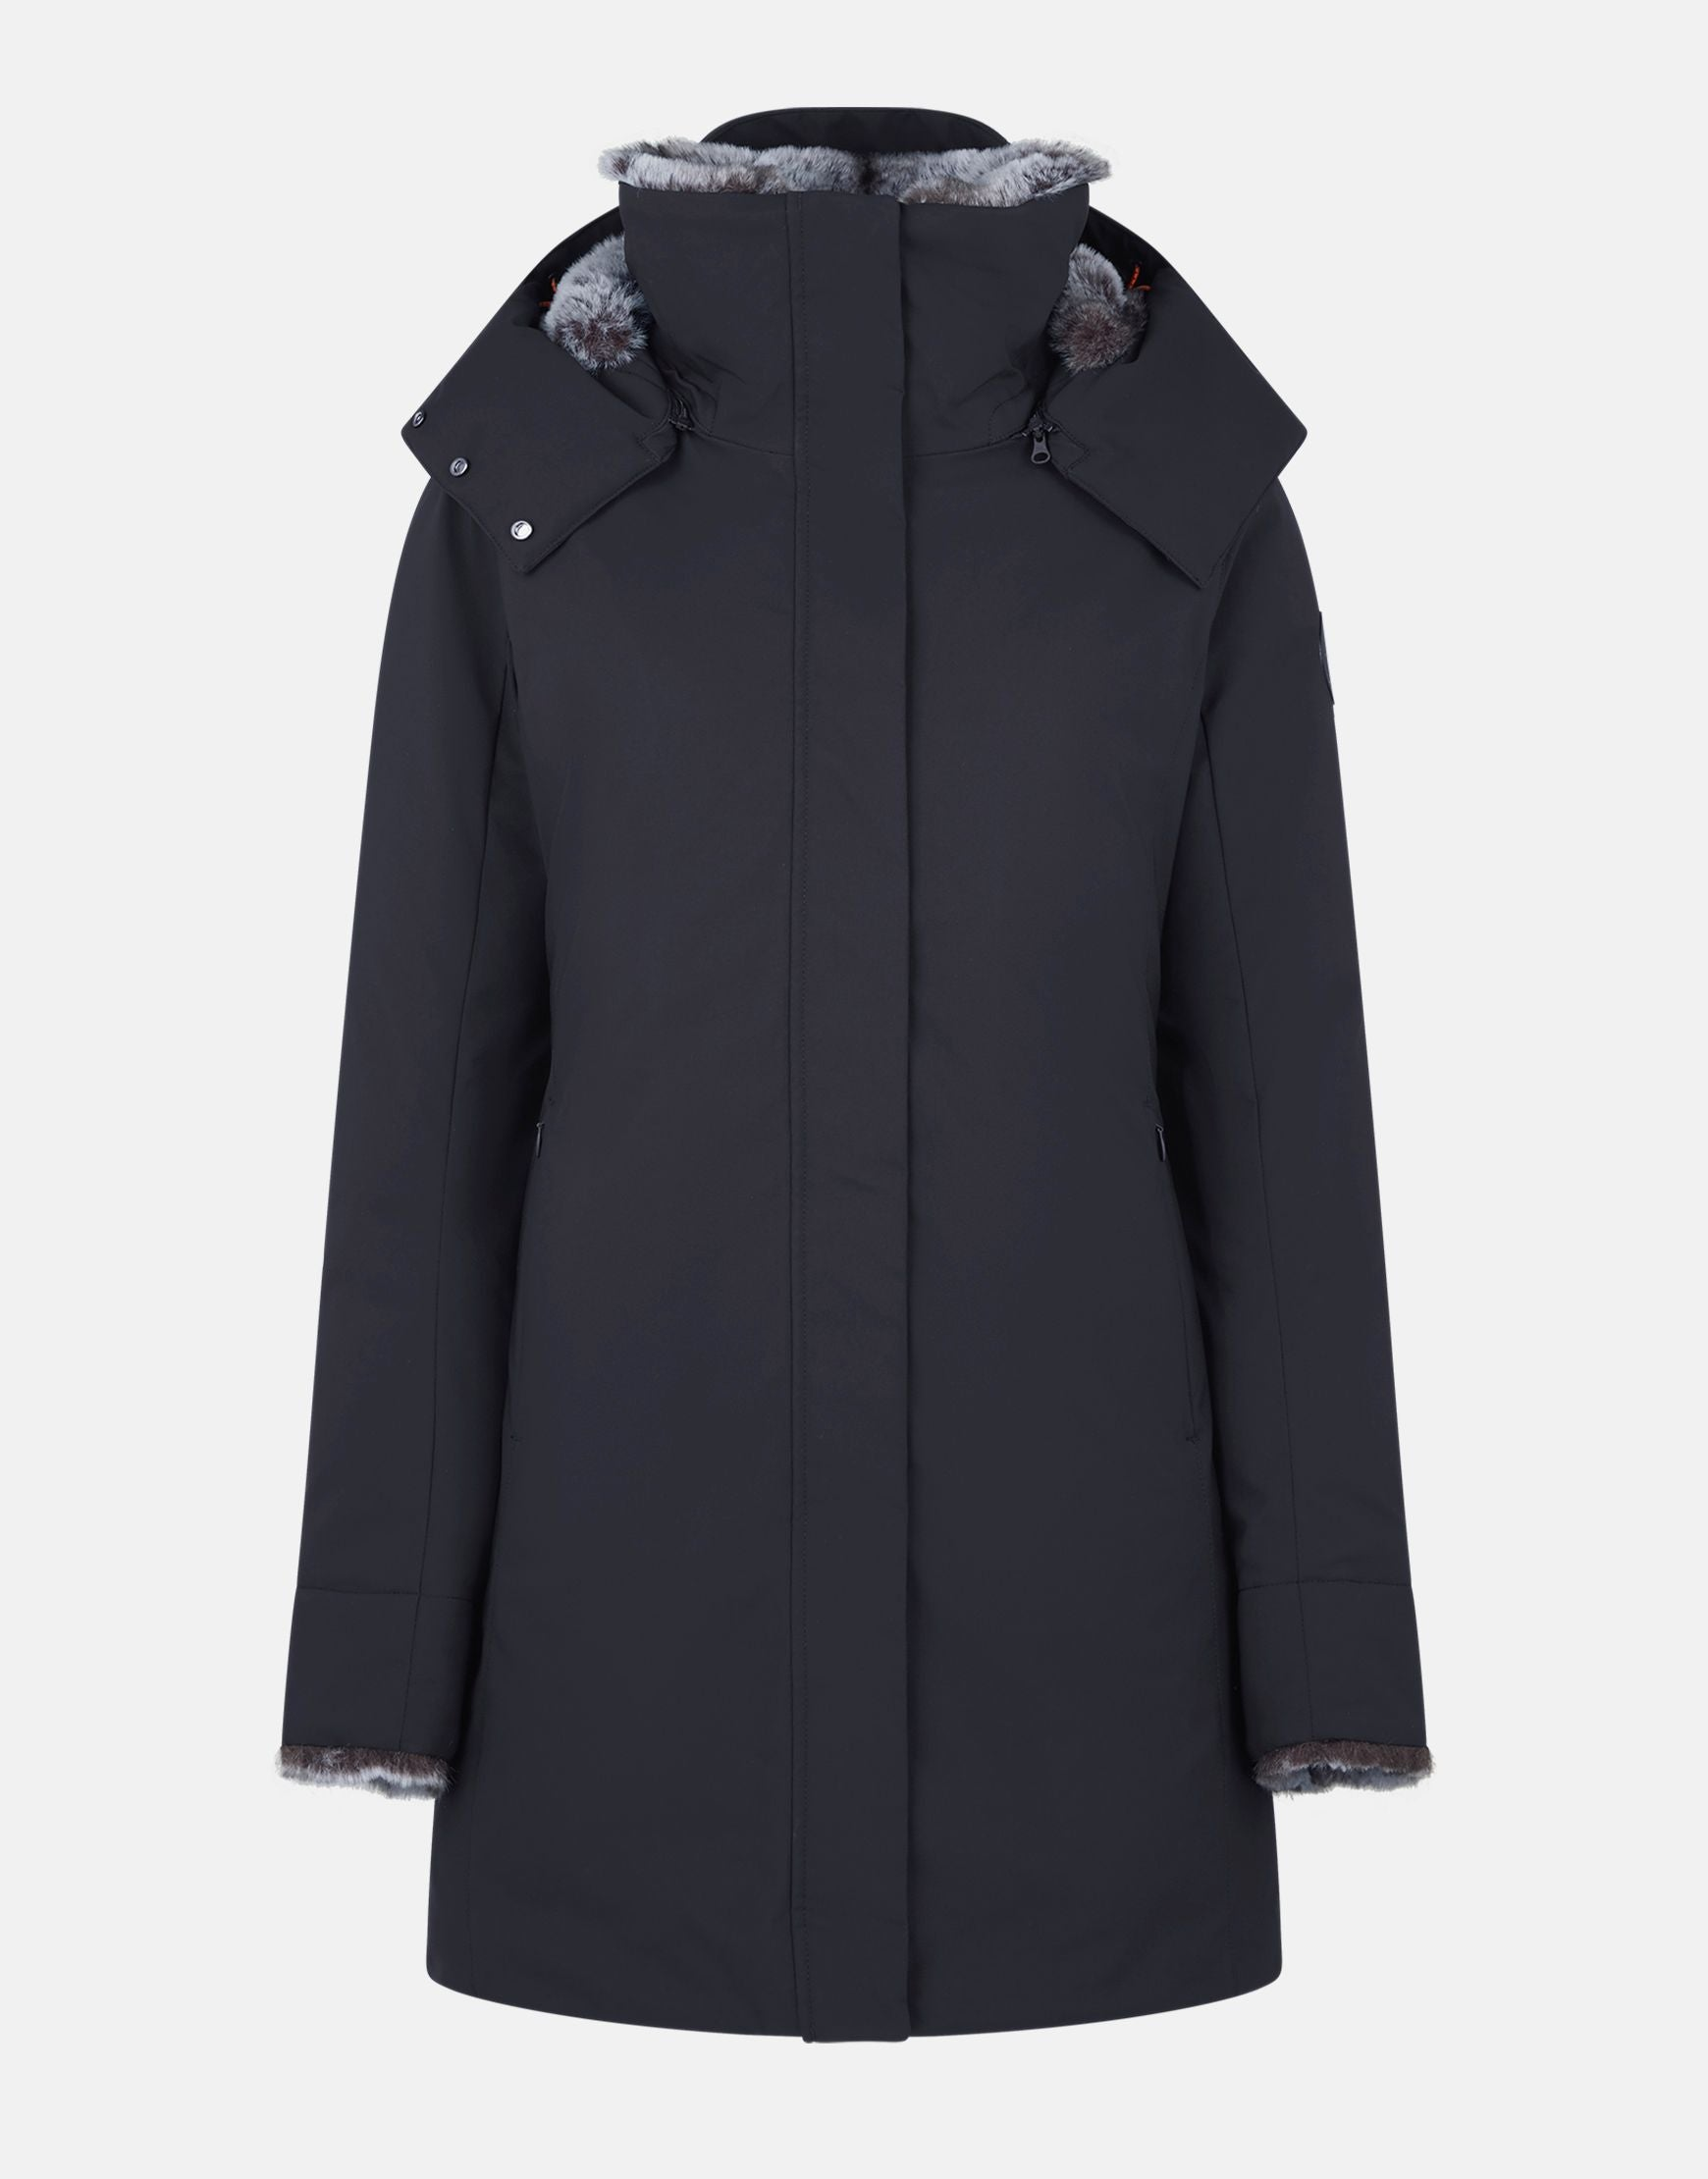 The Hooded Parka with Faux Fur Lining in Shadow Black